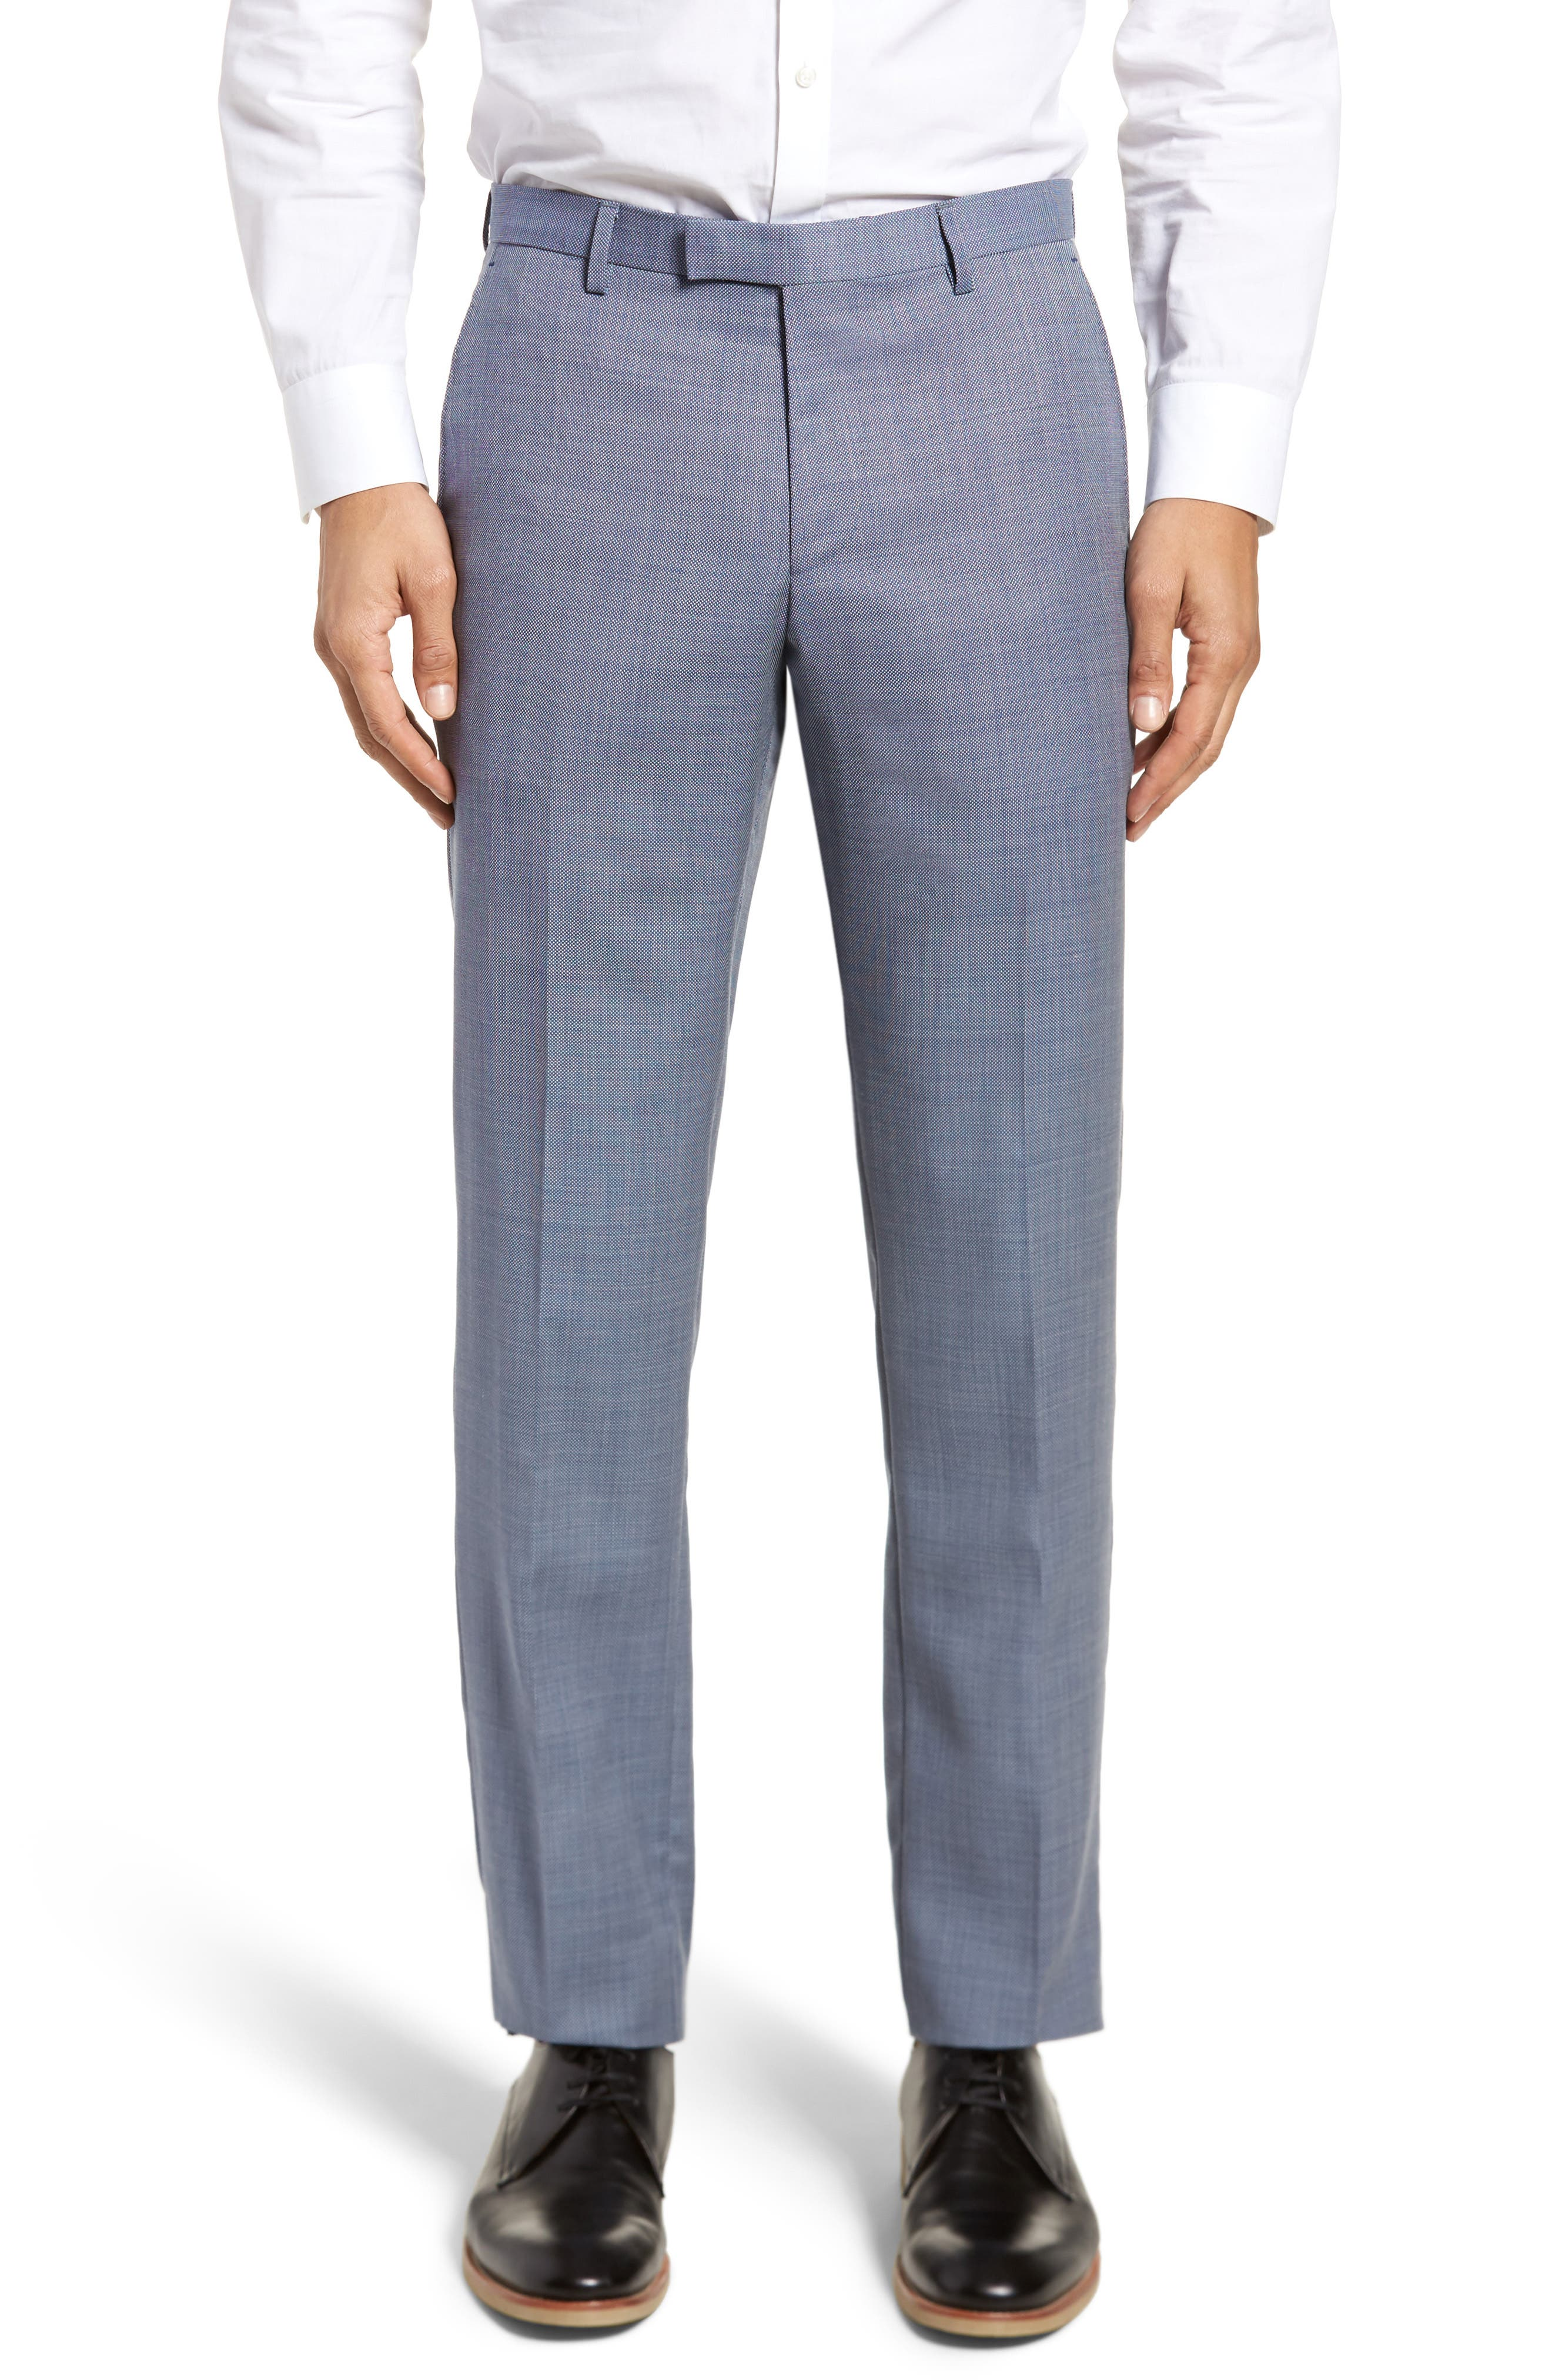 Leenon Flat Front Regular Fit Solid Wool Trousers,                         Main,                         color, Light/ Pastel Blue